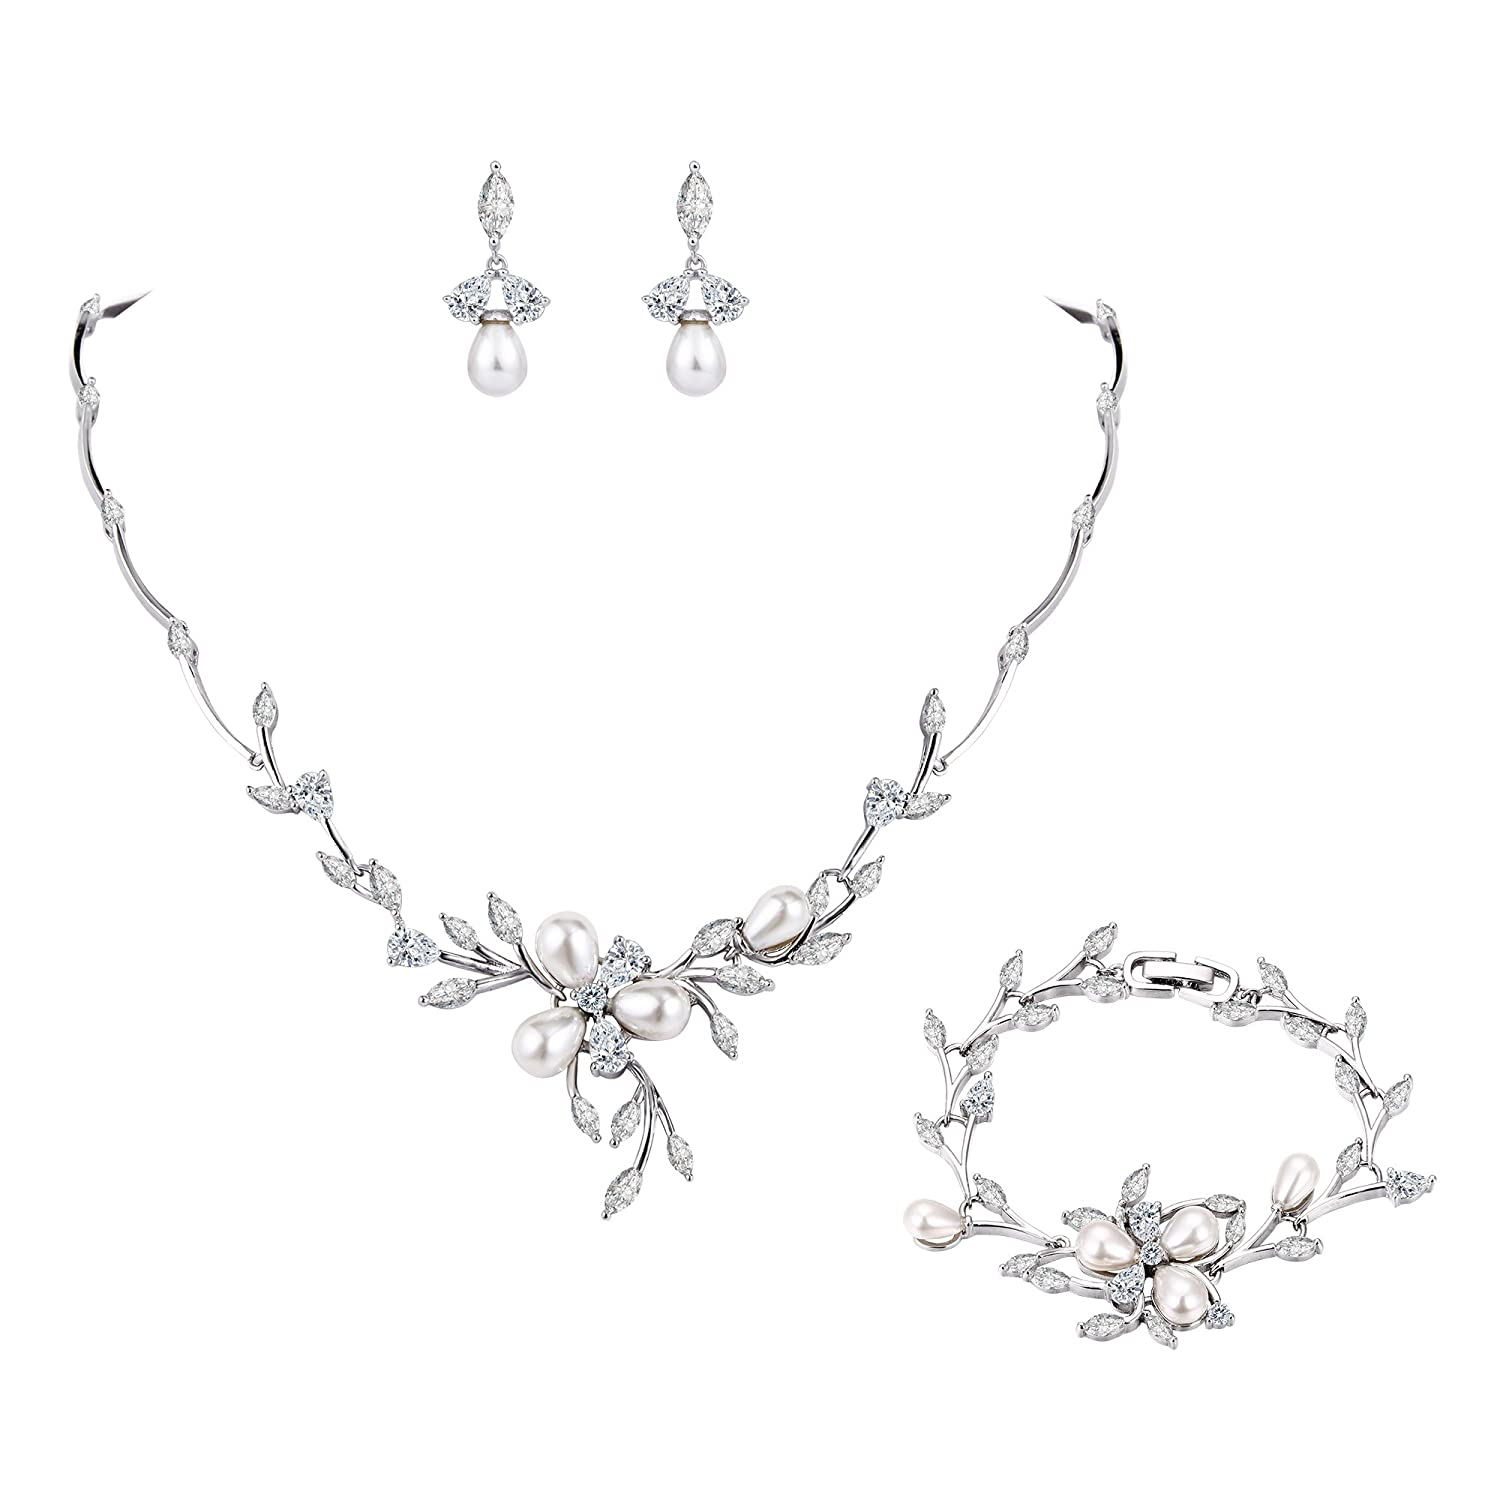 EVER FAITH CZ Simulated Pearl Flower Leaf Filigree Necklace Earrings Bracelet Set Clear Silver-Tone N10230-1